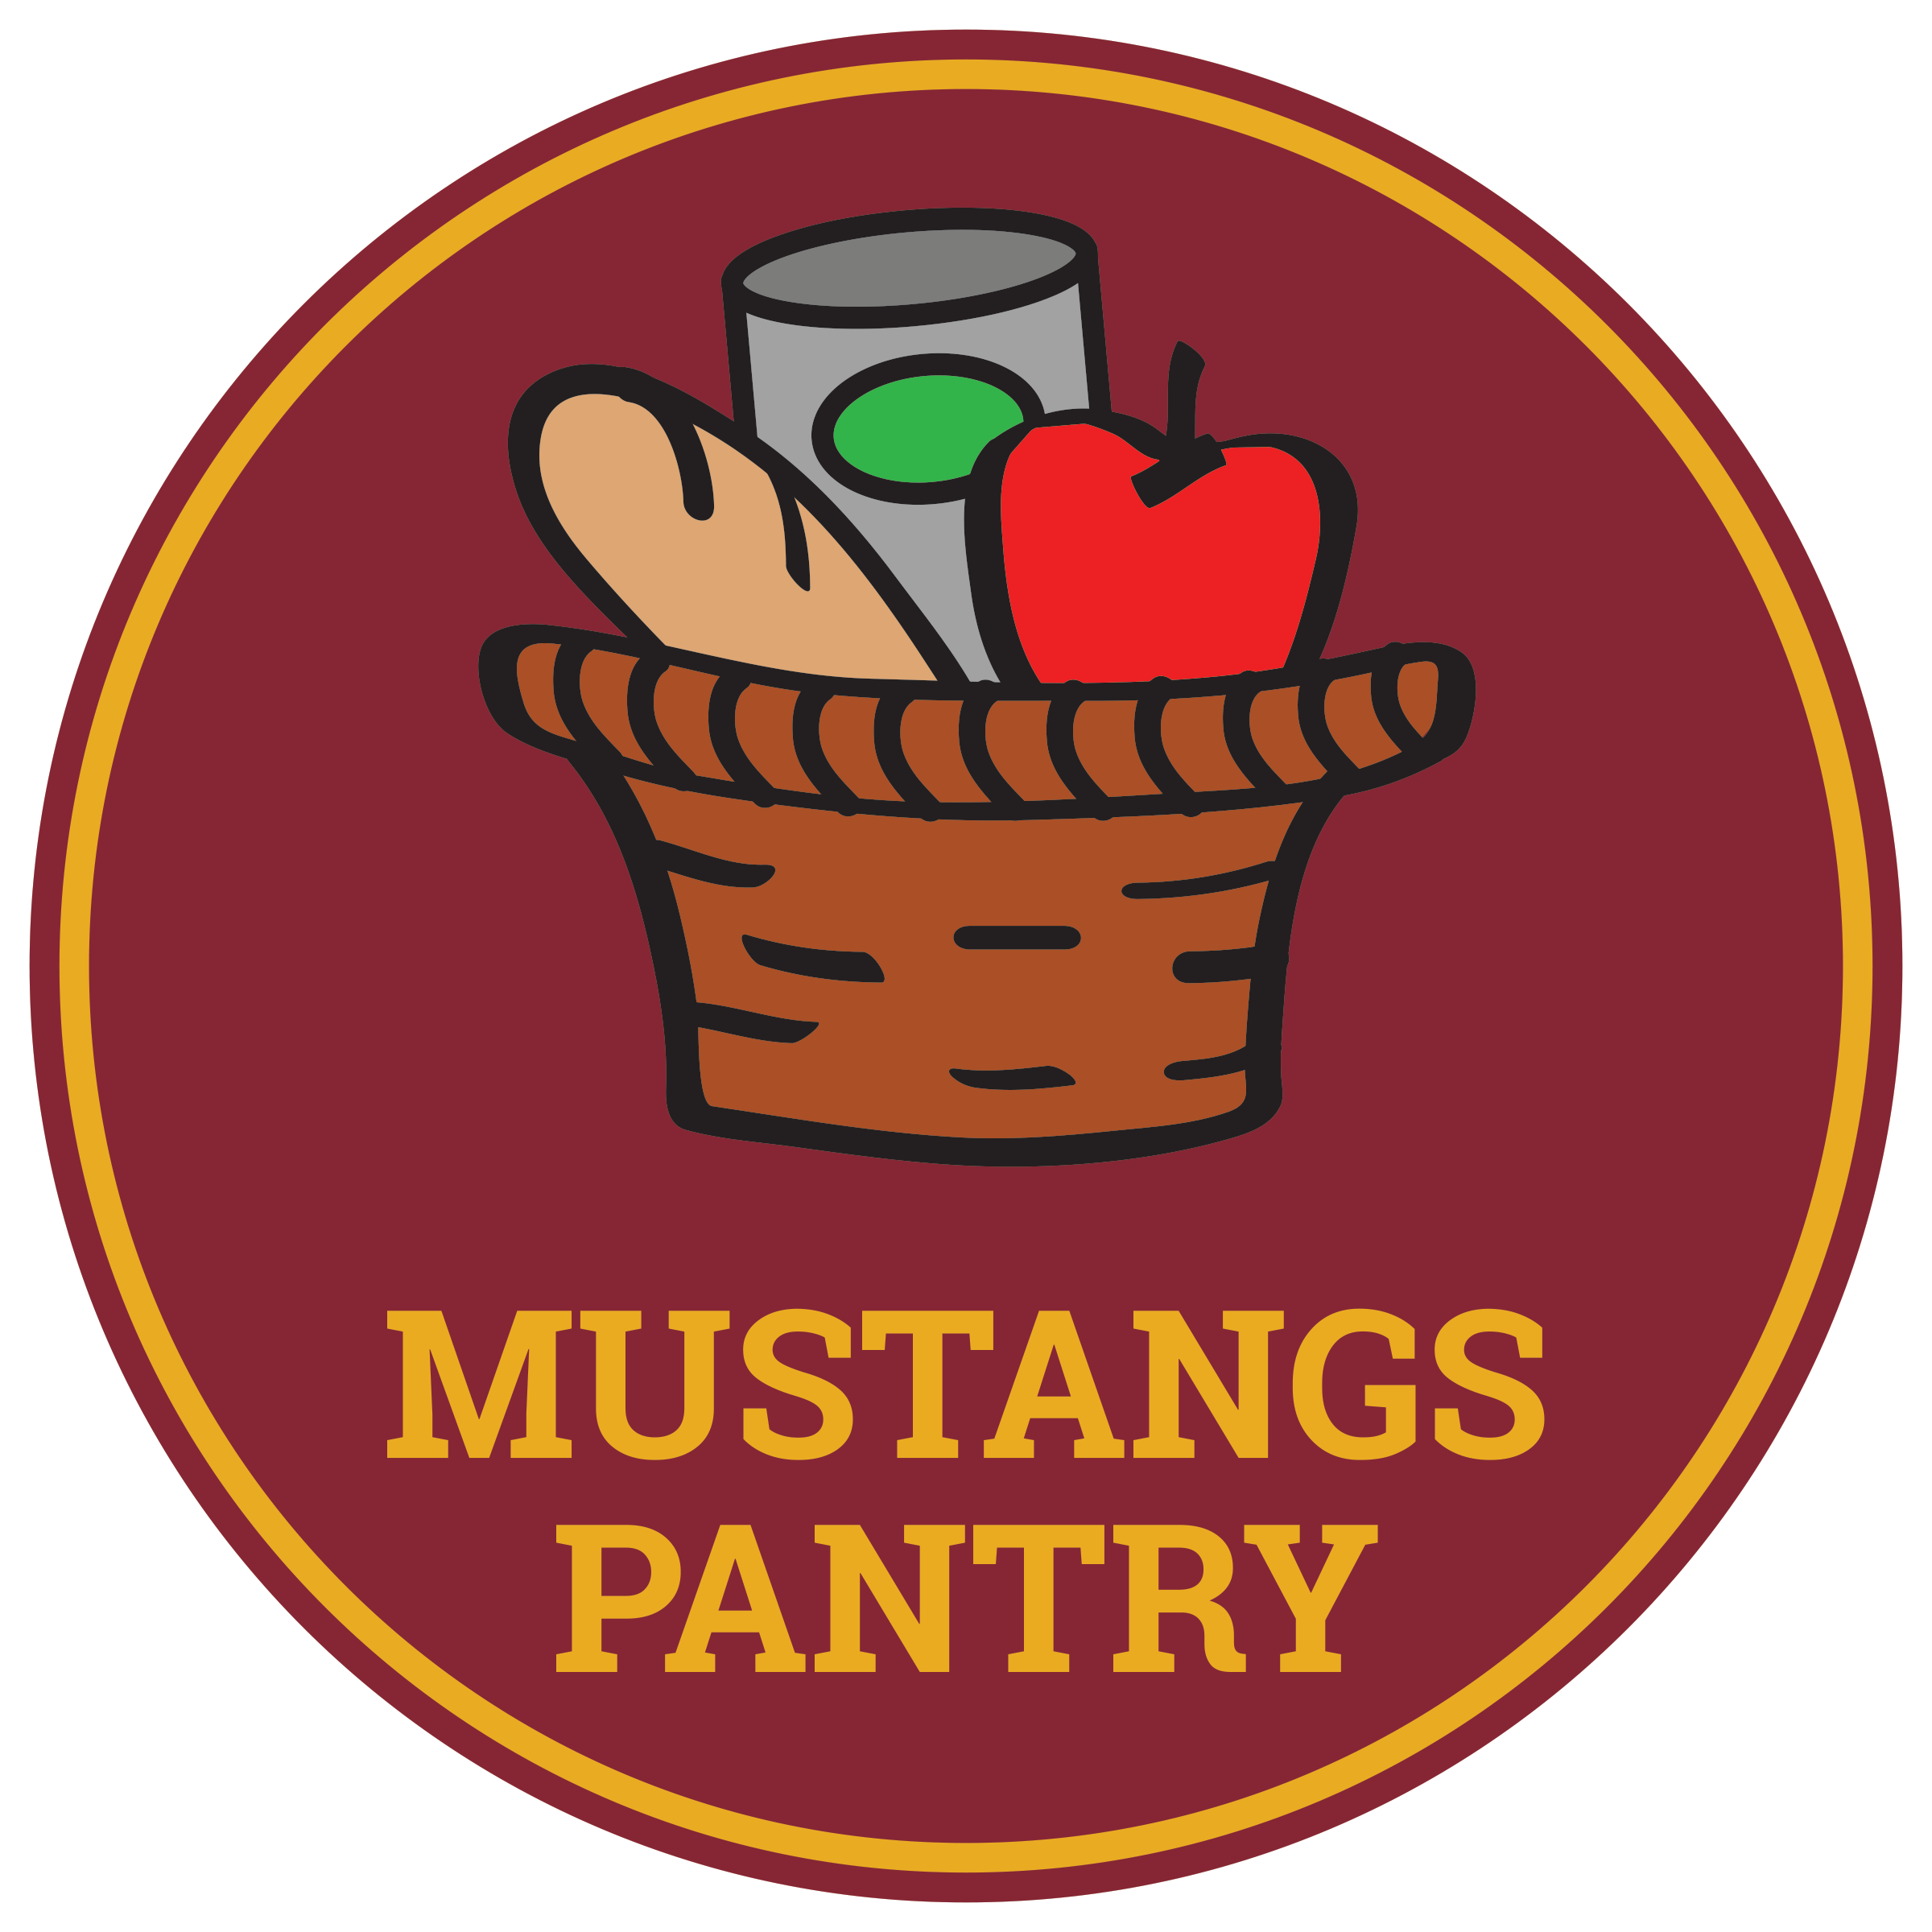 Mustangs Food Pantry